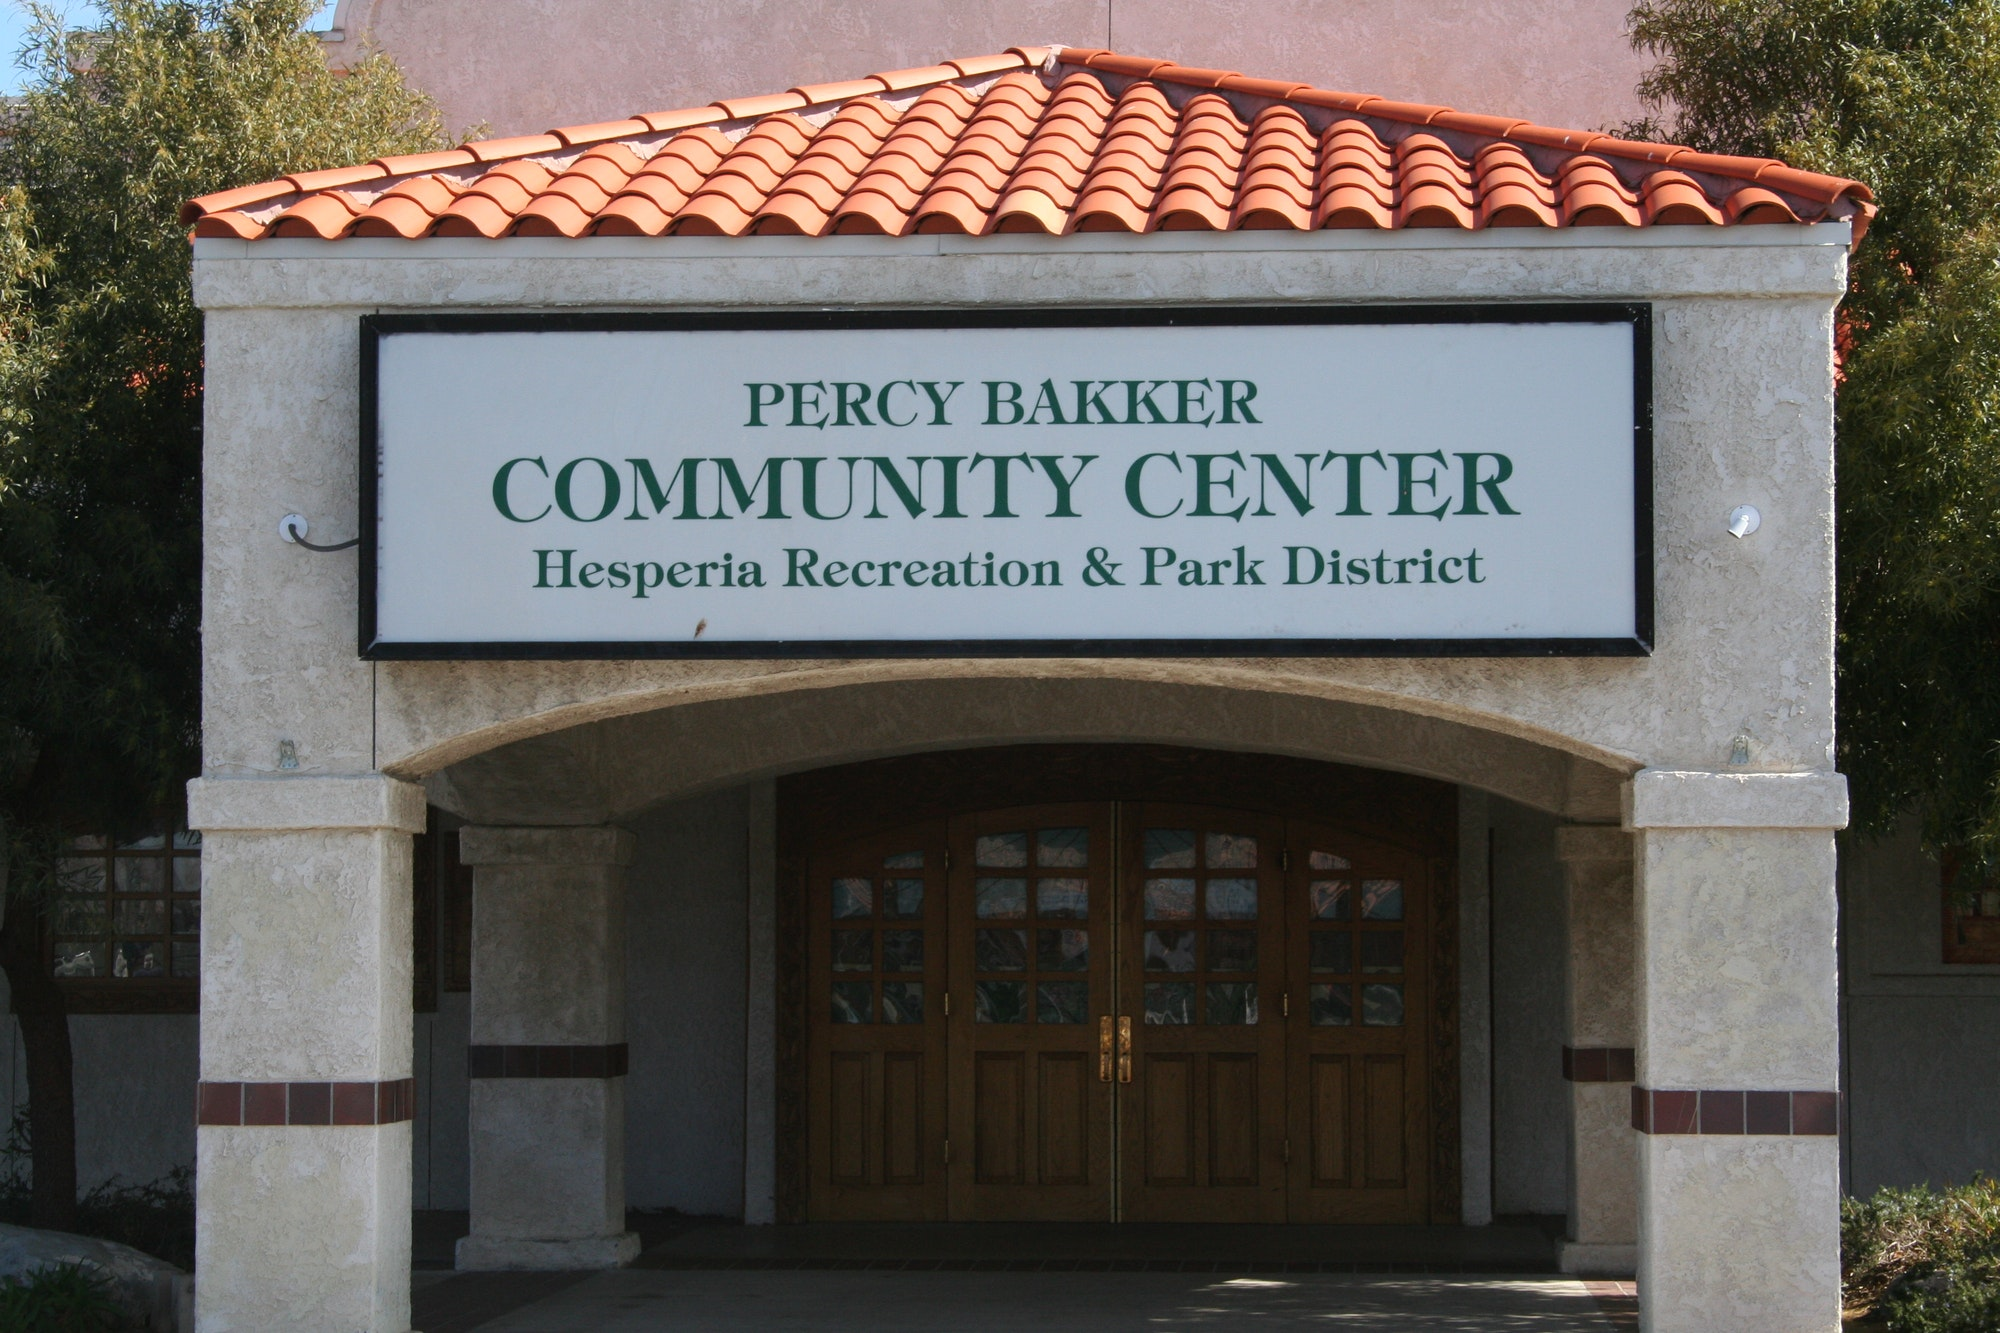 Percy Bakker Community Center front enterance